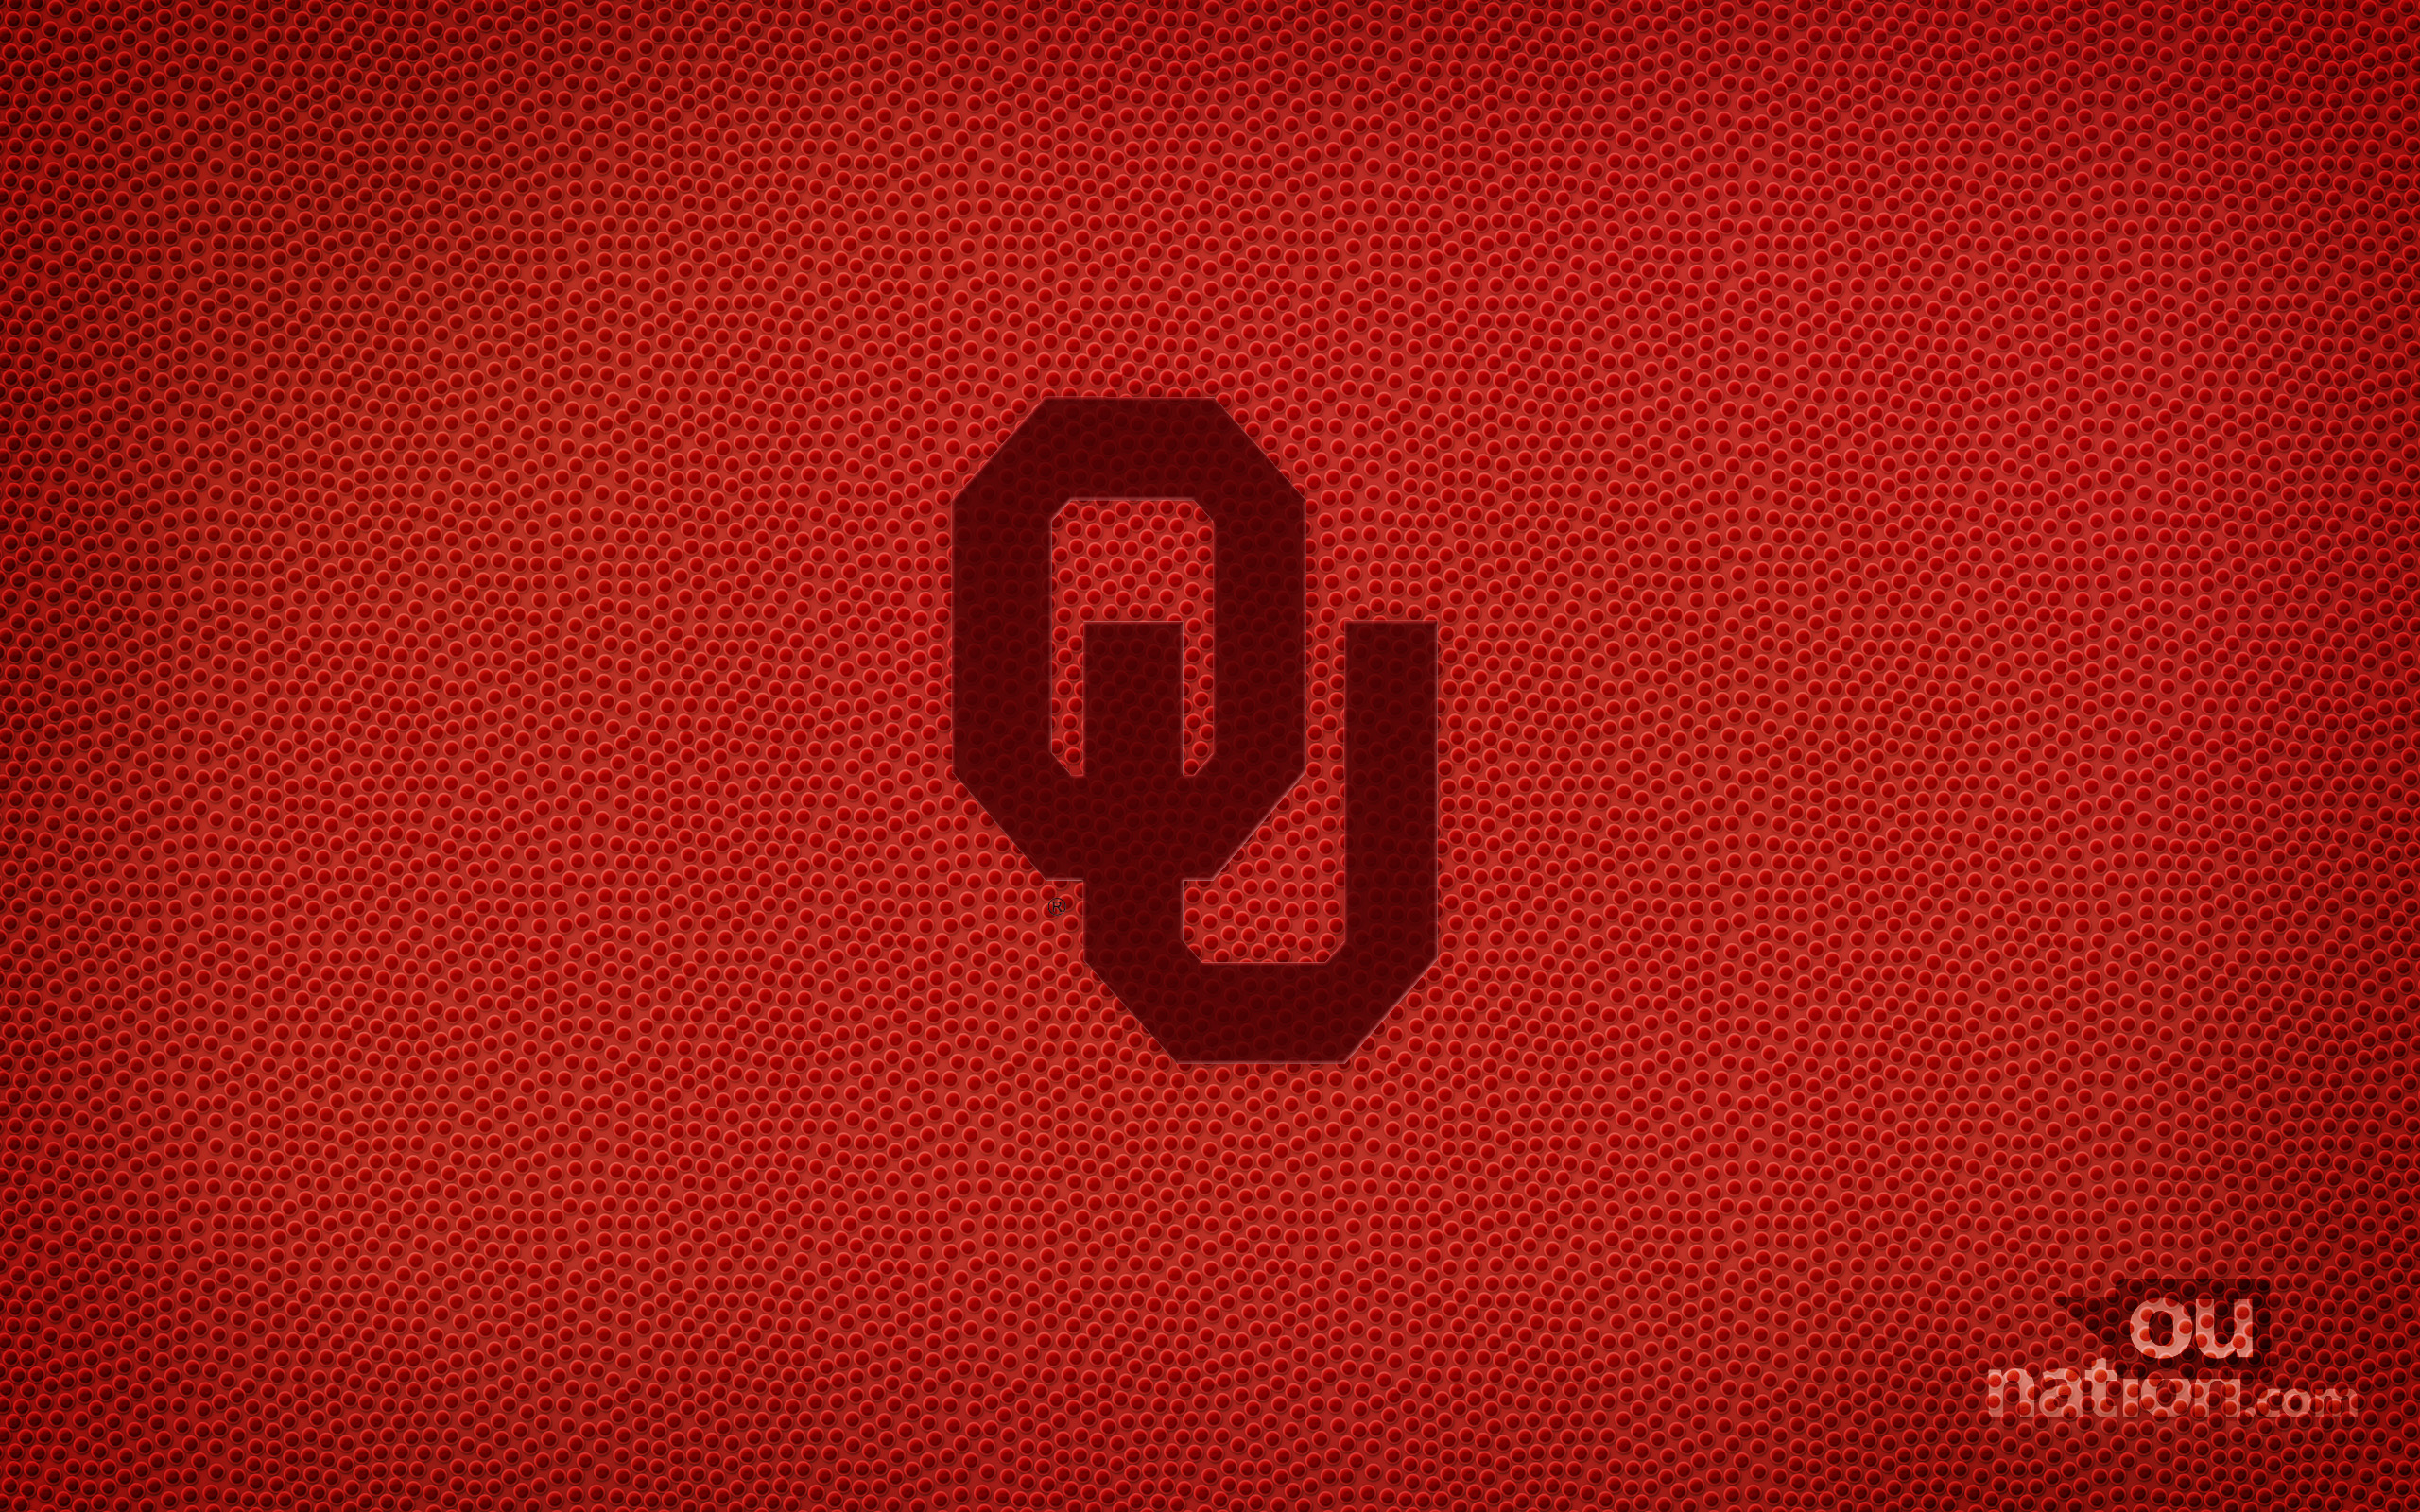 ou logo wallpapers football pigskin wallpaper 2560x1600